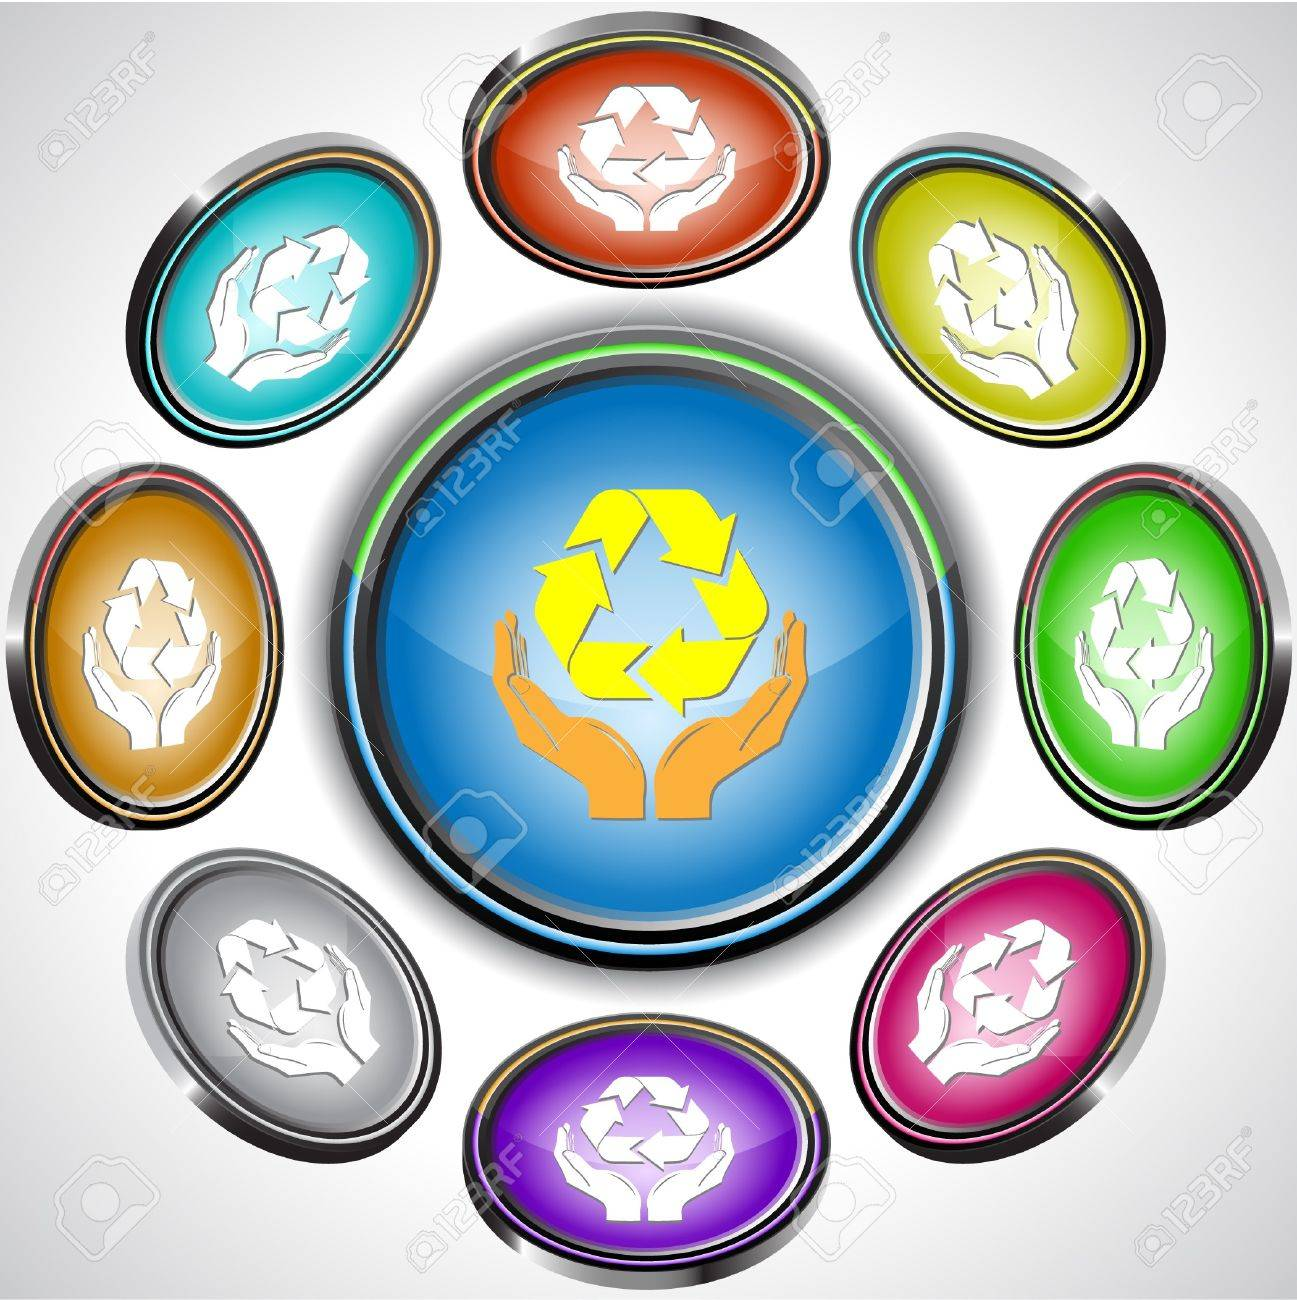 Protection nature. internet buttons. 8 different projections. Stock Vector - 7262063